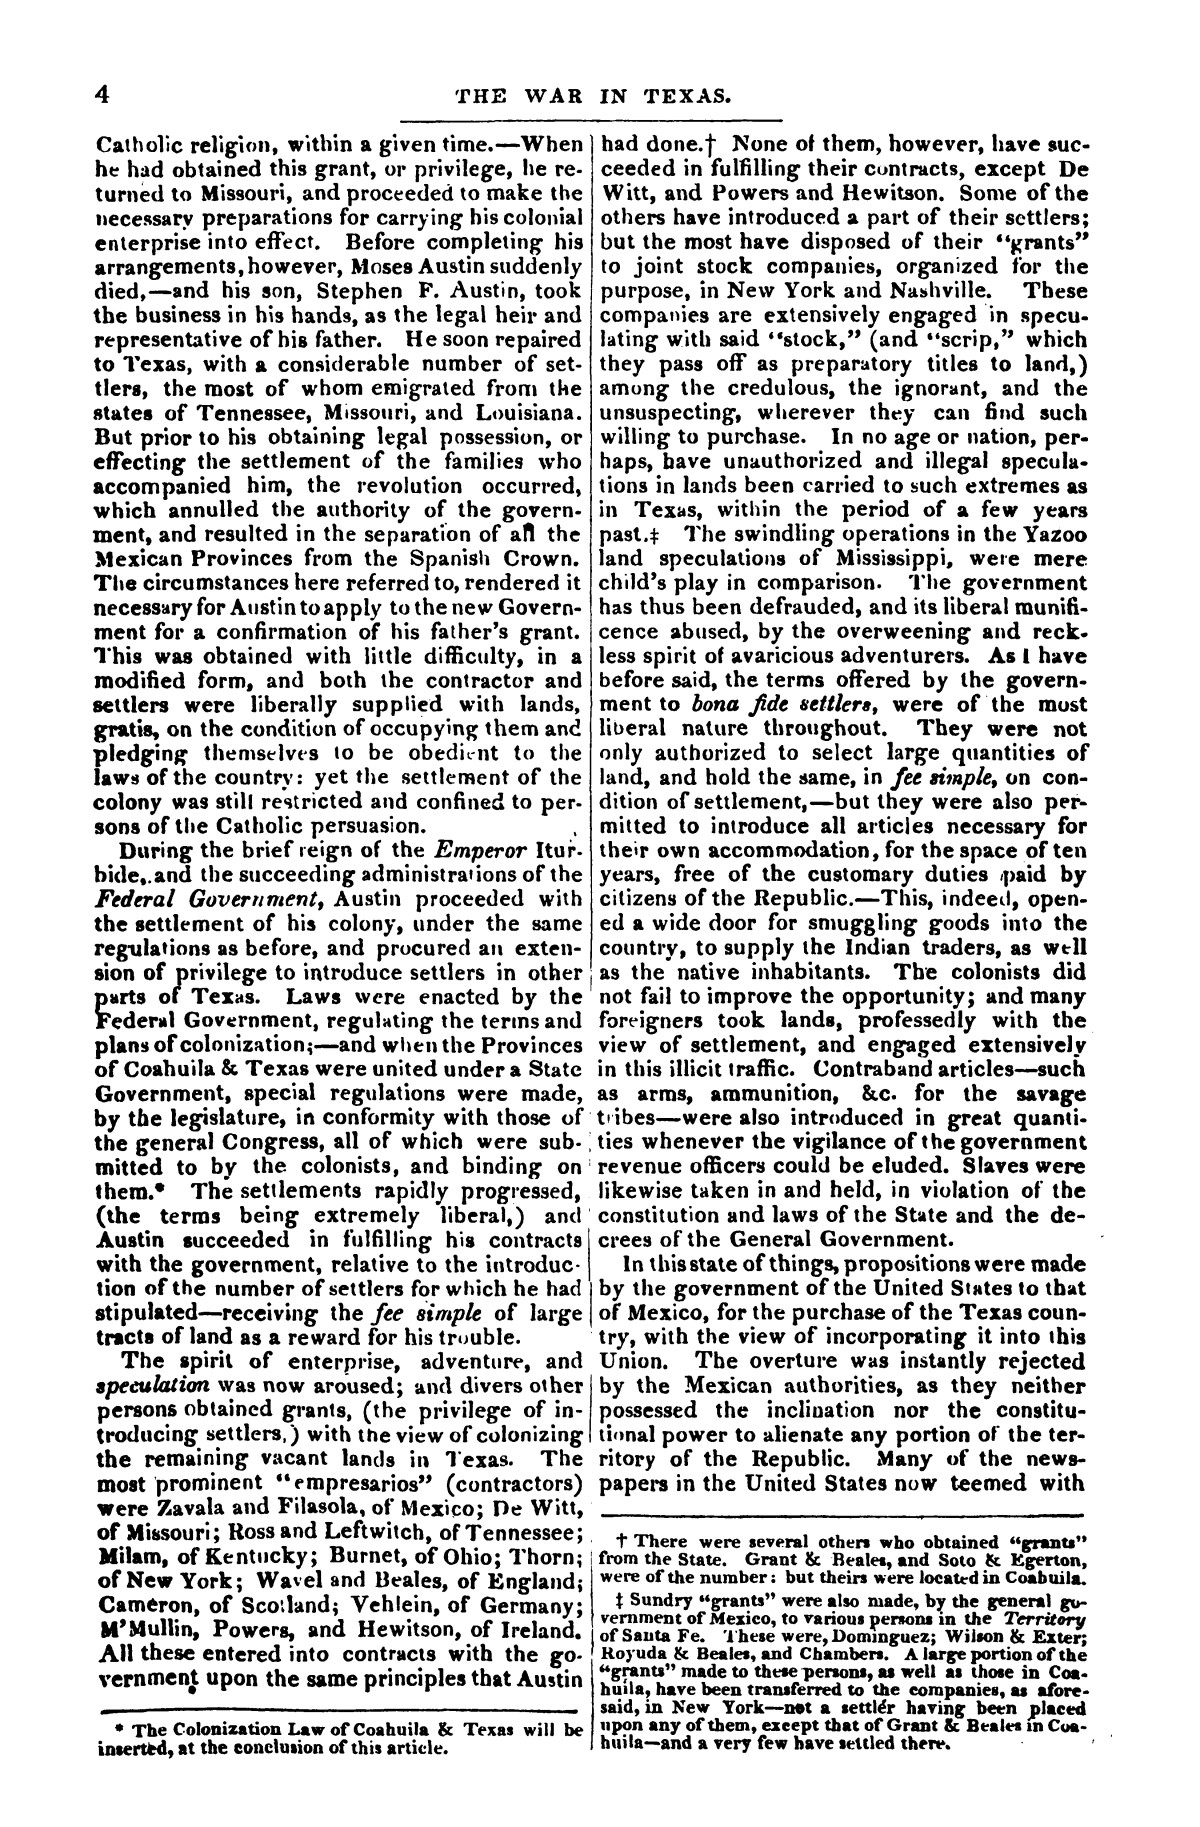 The war in Texas; a review of facts and circumstances, showing that this contest is a crusade against Mexico, set on foot by slaveholders, land speculators, & c. in order to re-establish, extend, and perpetuate the system of slavery and the slave trade.                                                                                                      [Sequence #]: 4 of 64